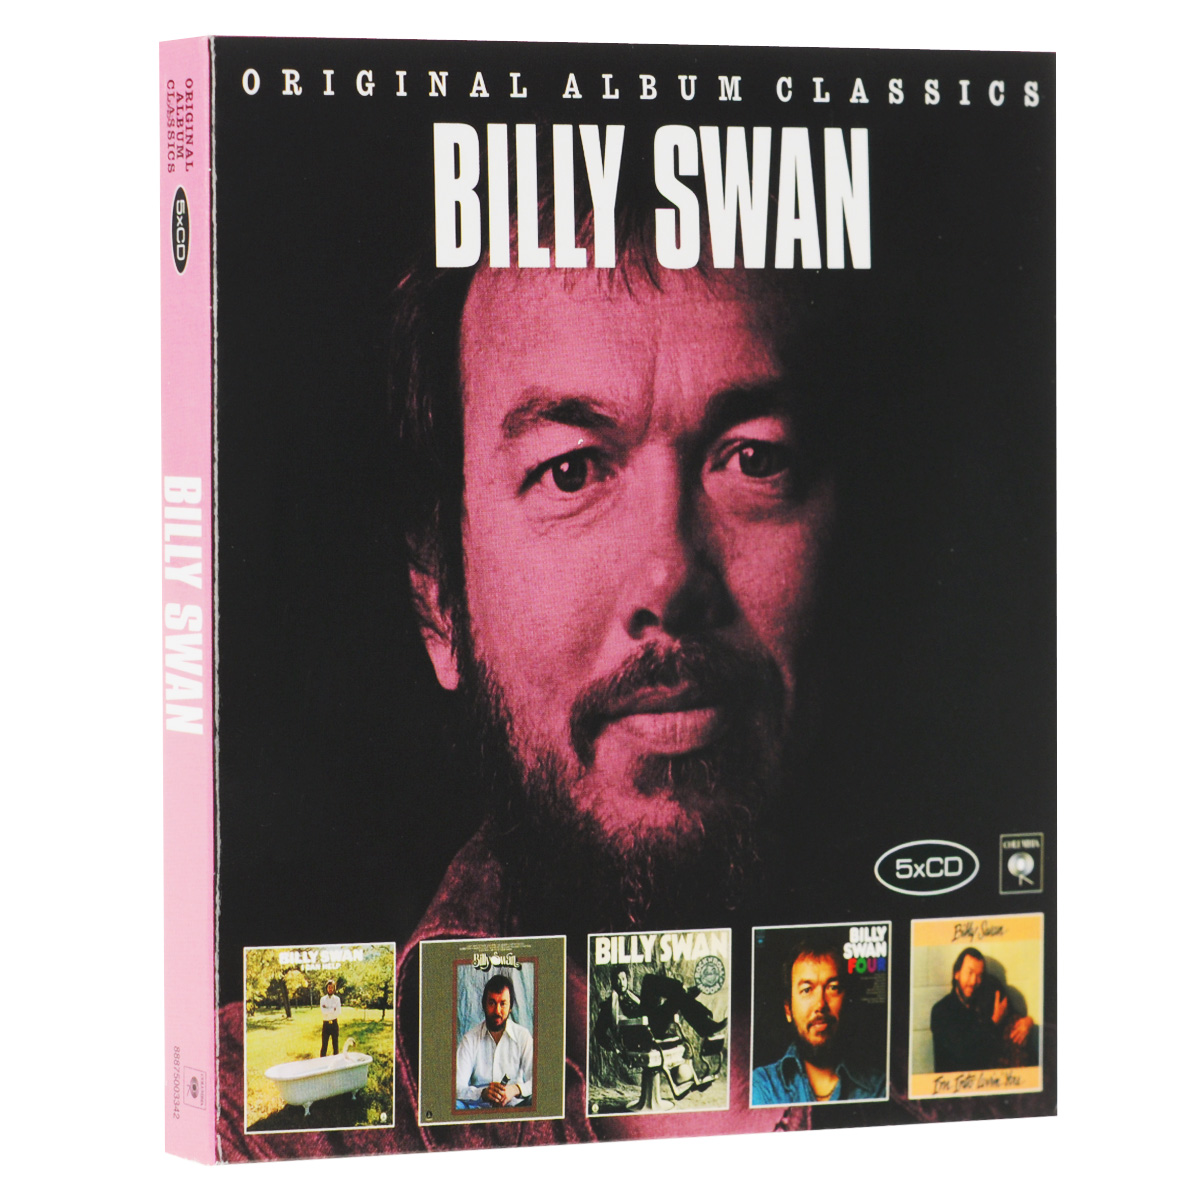 Билли Суон Billy Swan. Original Album Classics (5 CD) billy s band концерт на крыше roof music fest